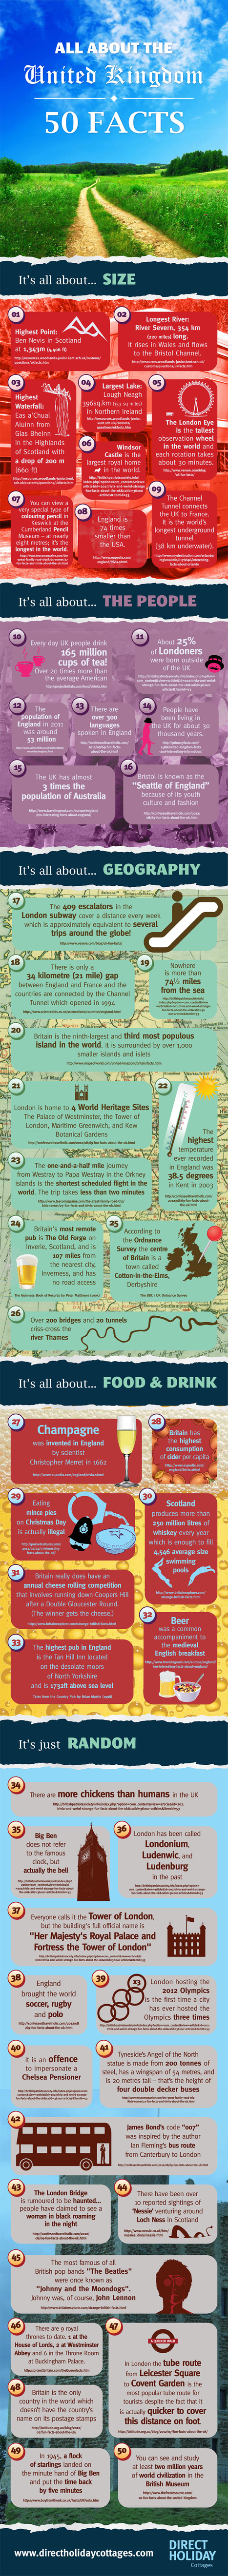 All About The United Kingdom - 50 Facts - Infographic | Traveling light | Scoop.it